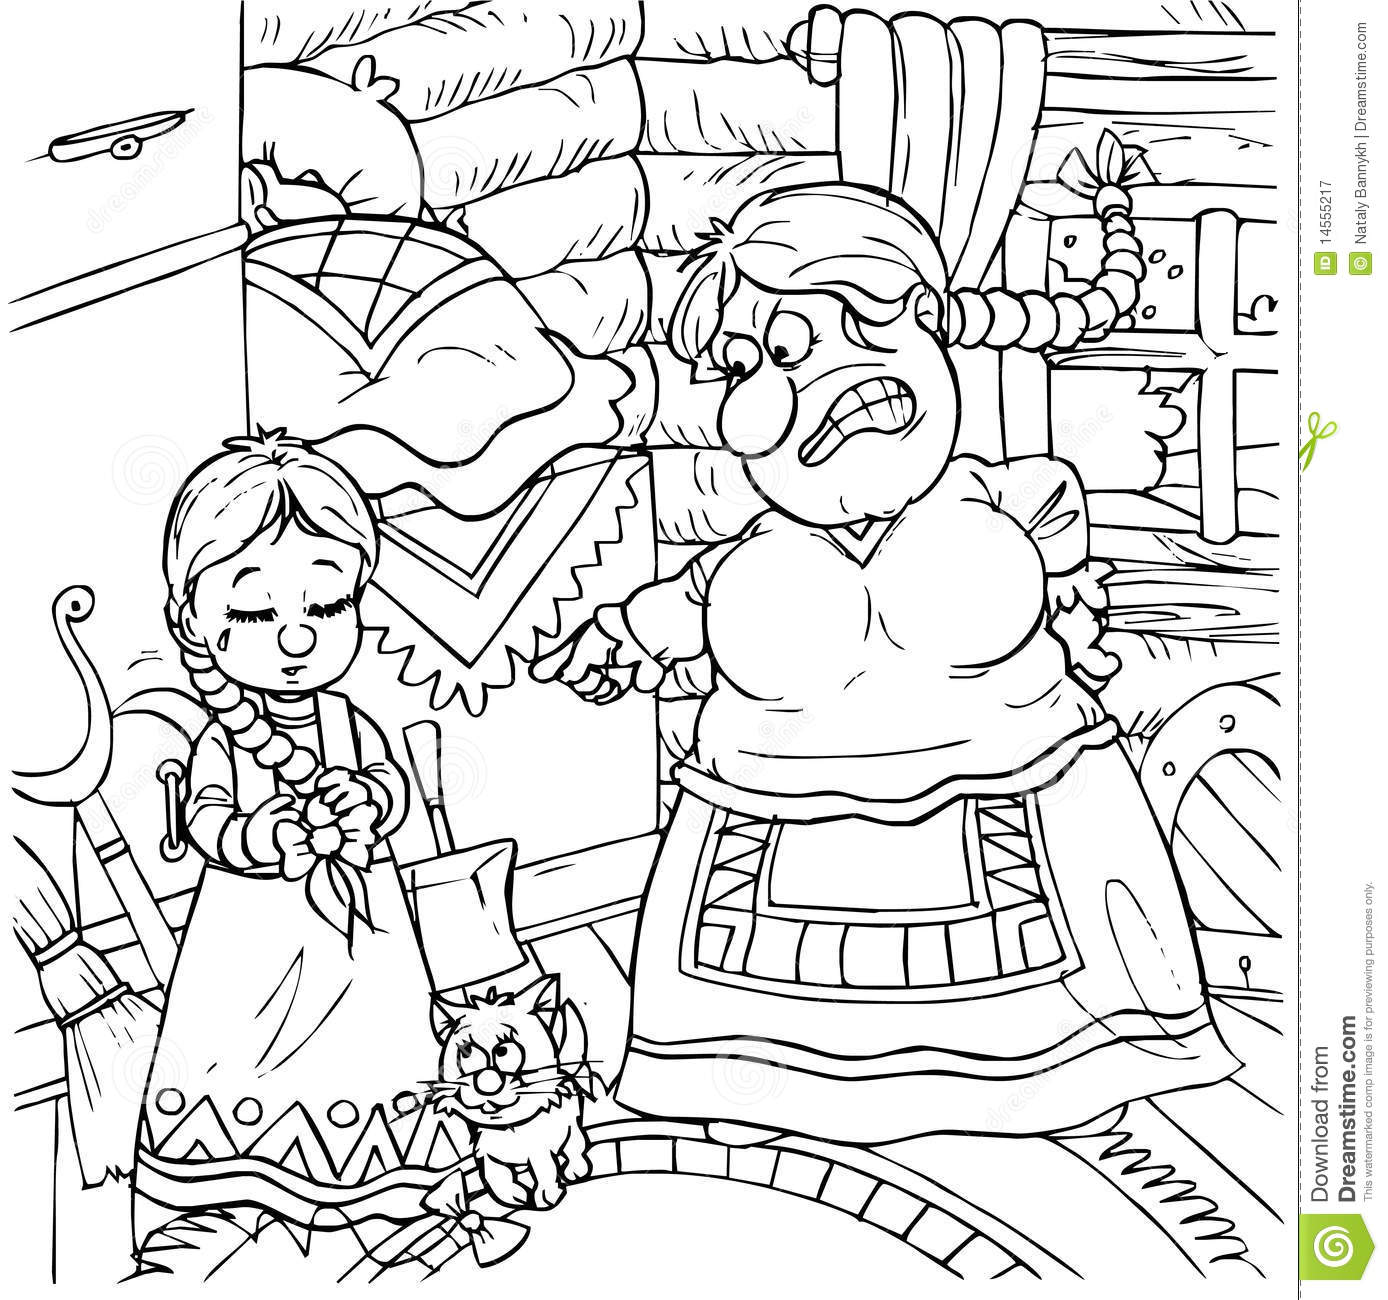 Stepmother cartoons illustrations vector stock images for Evil stepmother coloring pages